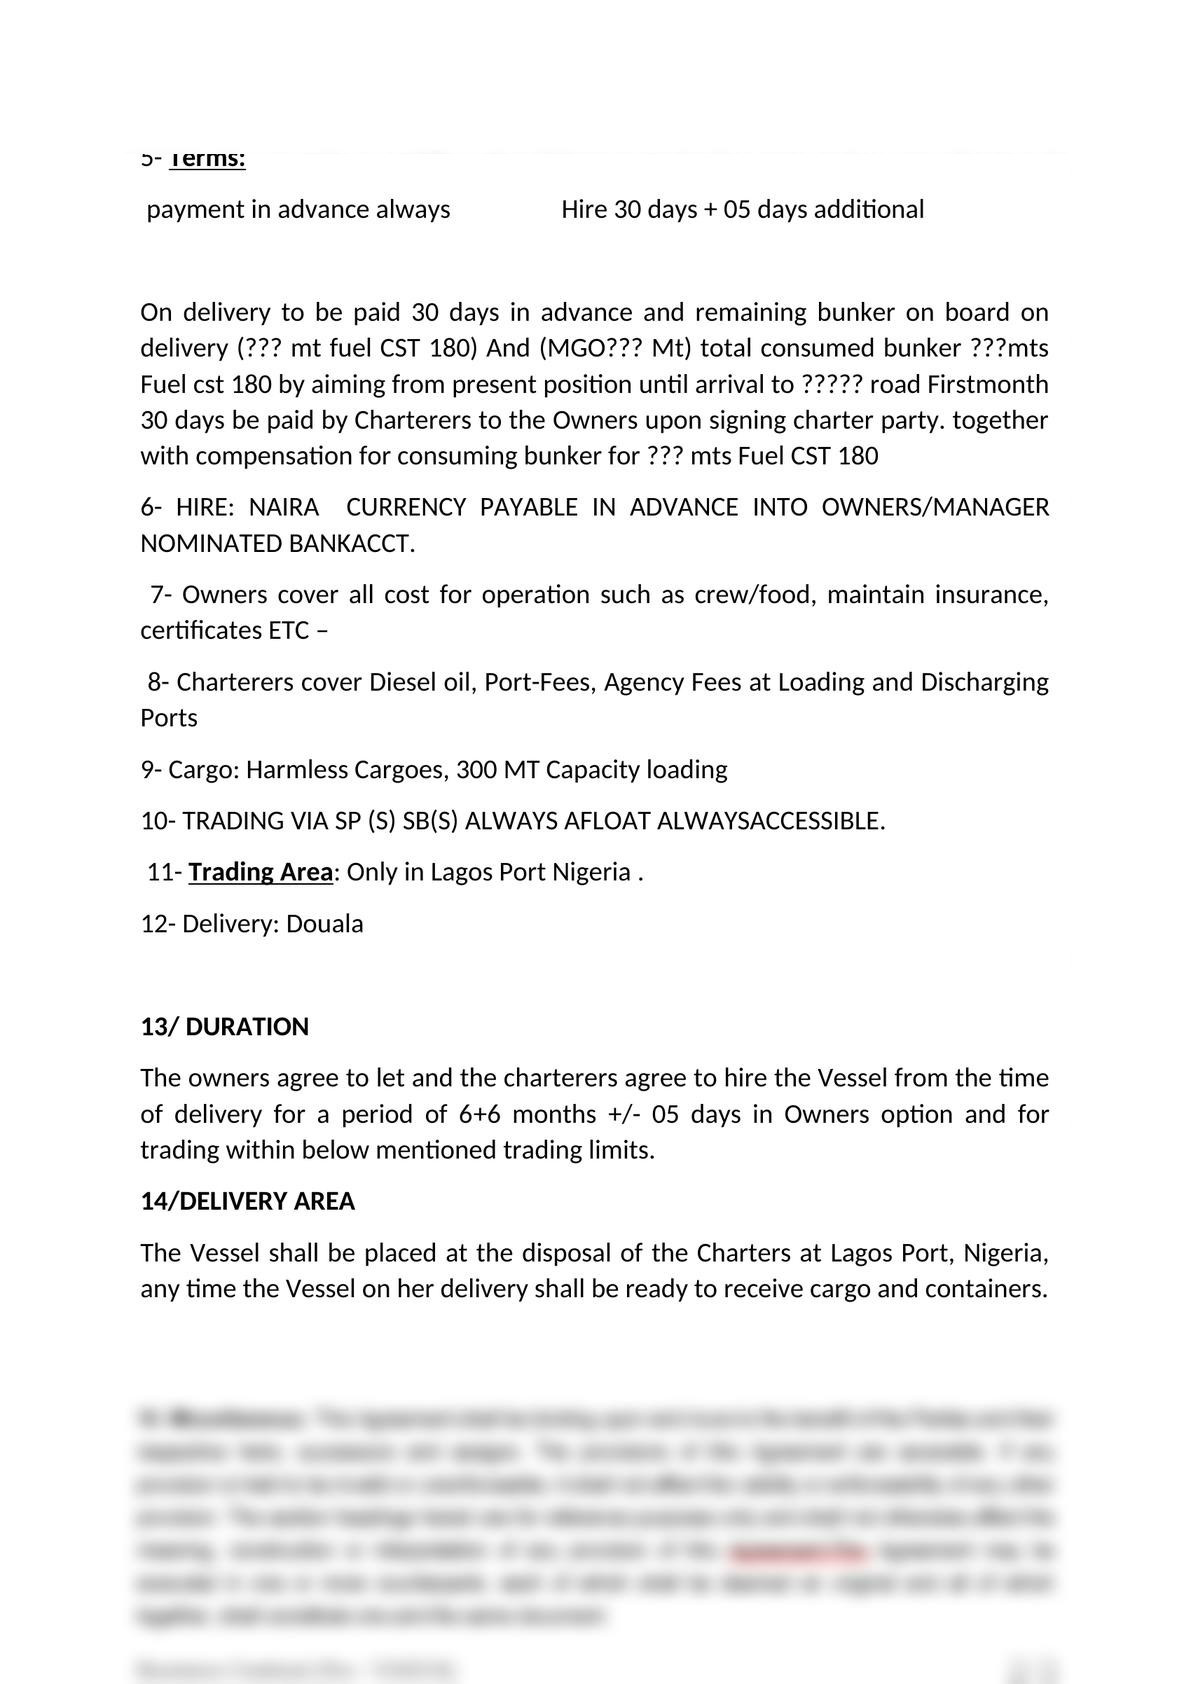 charter party agreement in cameroon-1